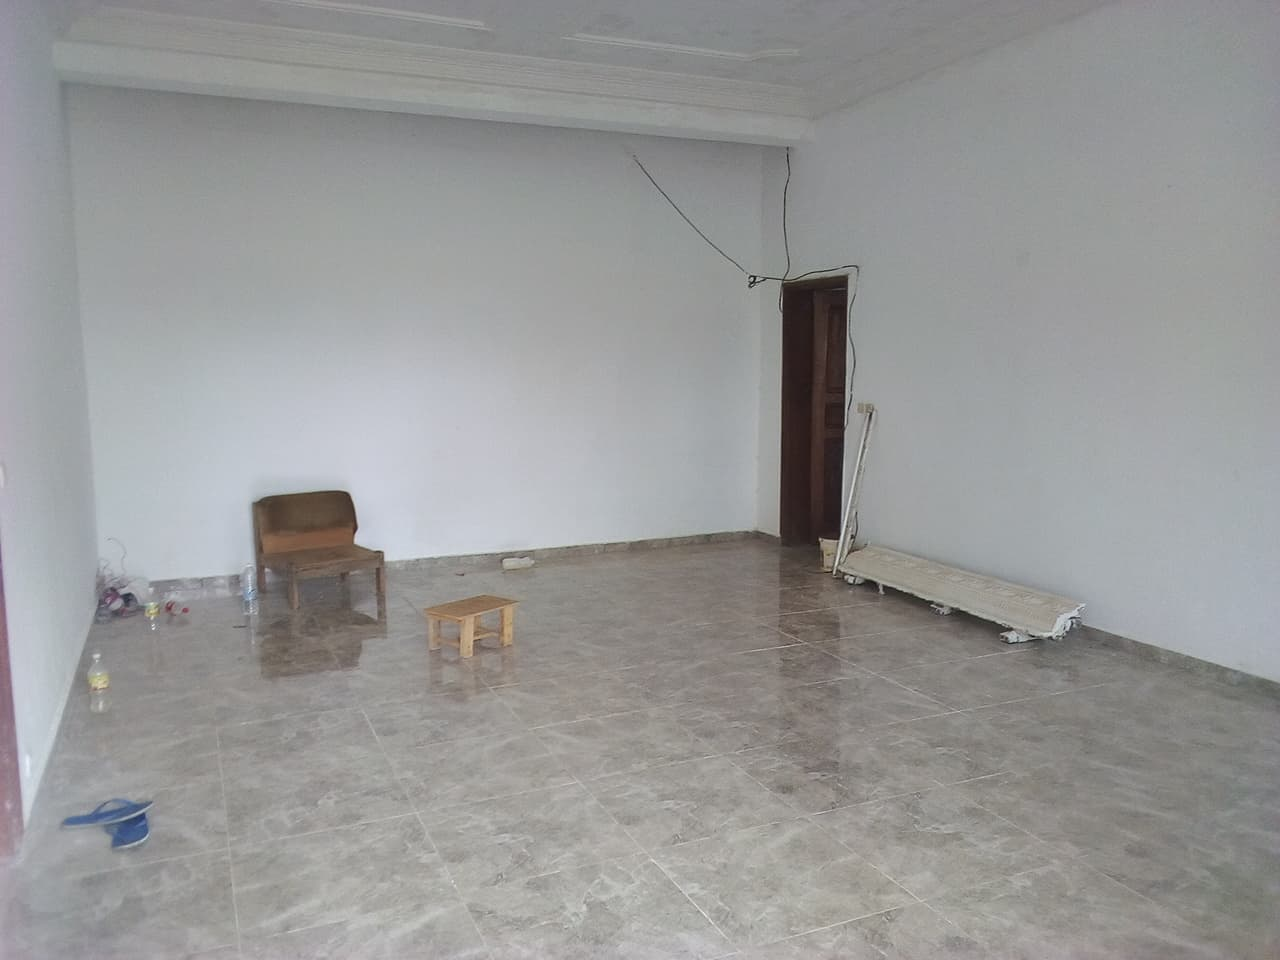 Office to rent at Yaoundé, Bastos, pas loin du black -  m2 - 1 200 000 FCFA